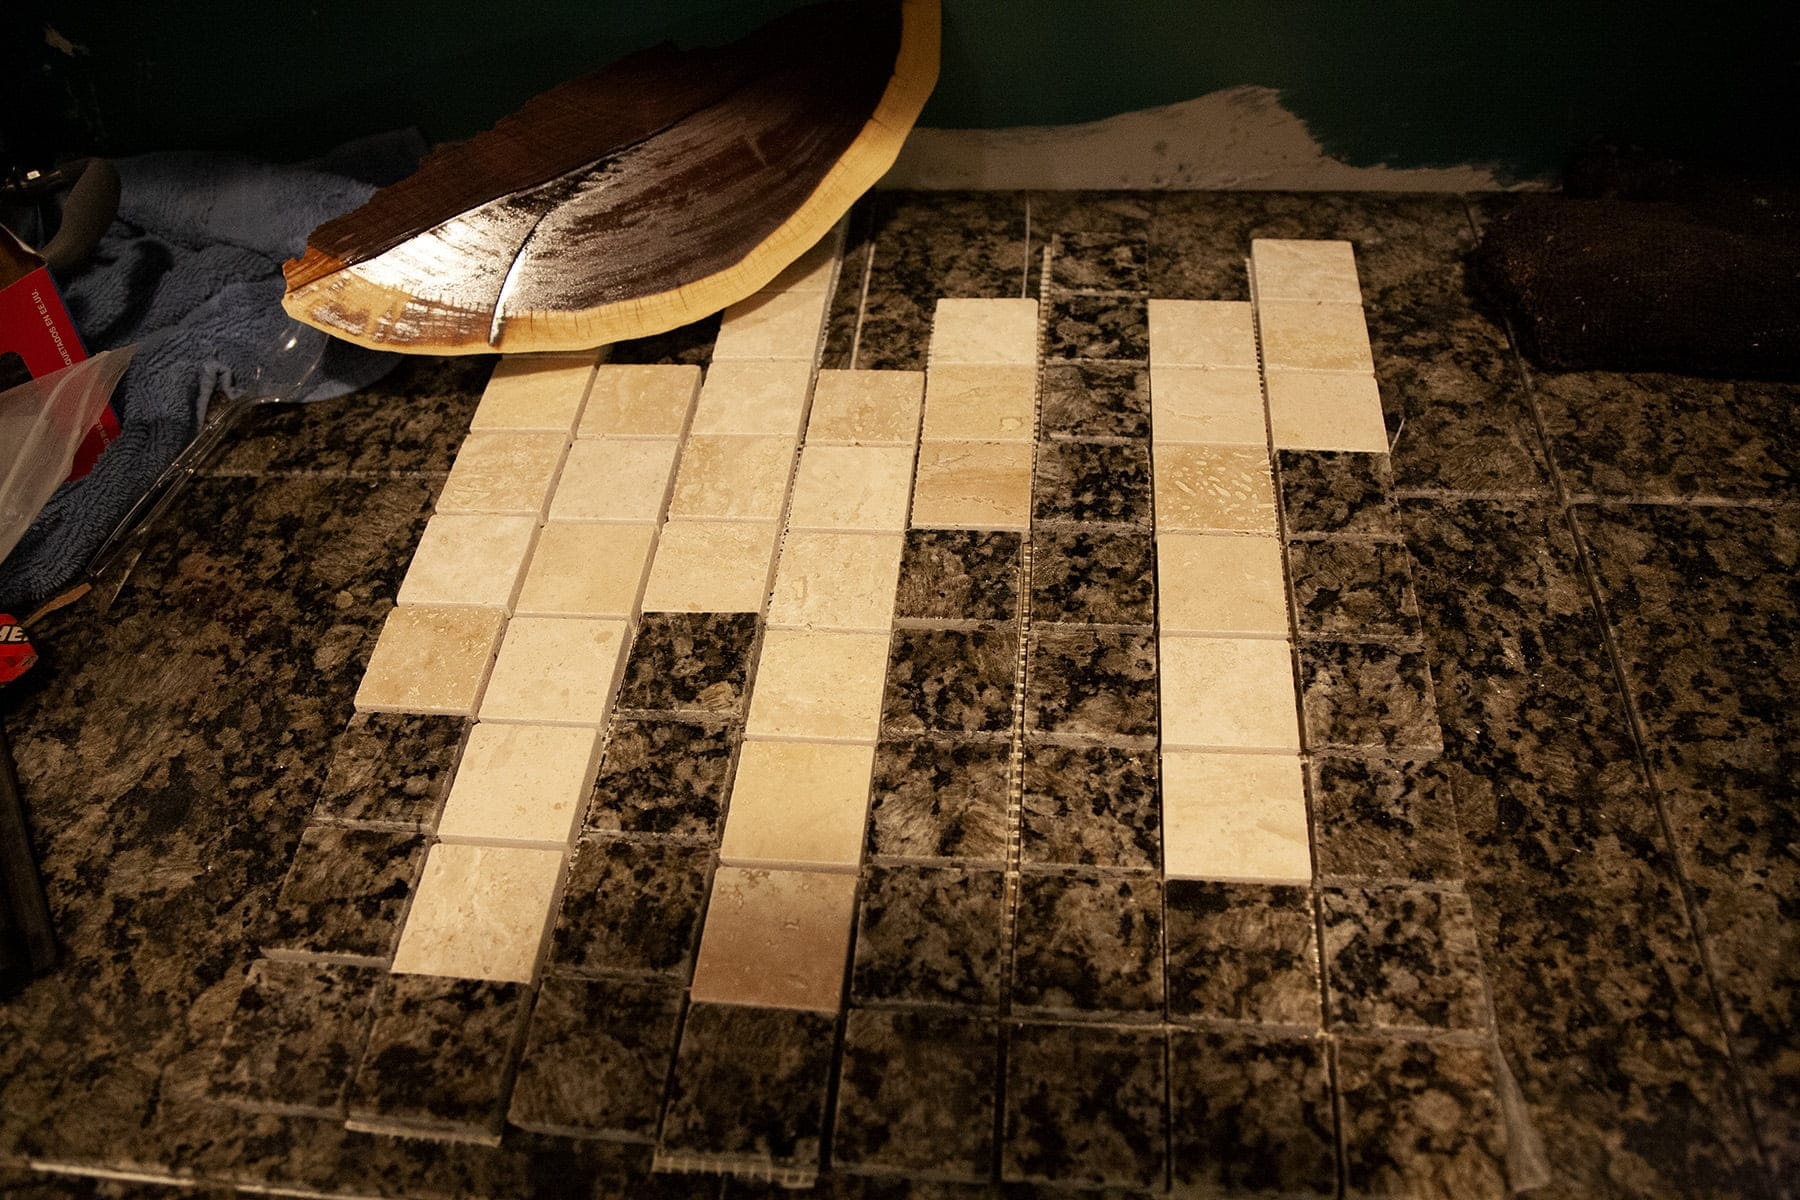 Columns of pre-cut strips of granite backsplash tiles are laid out on a counter.